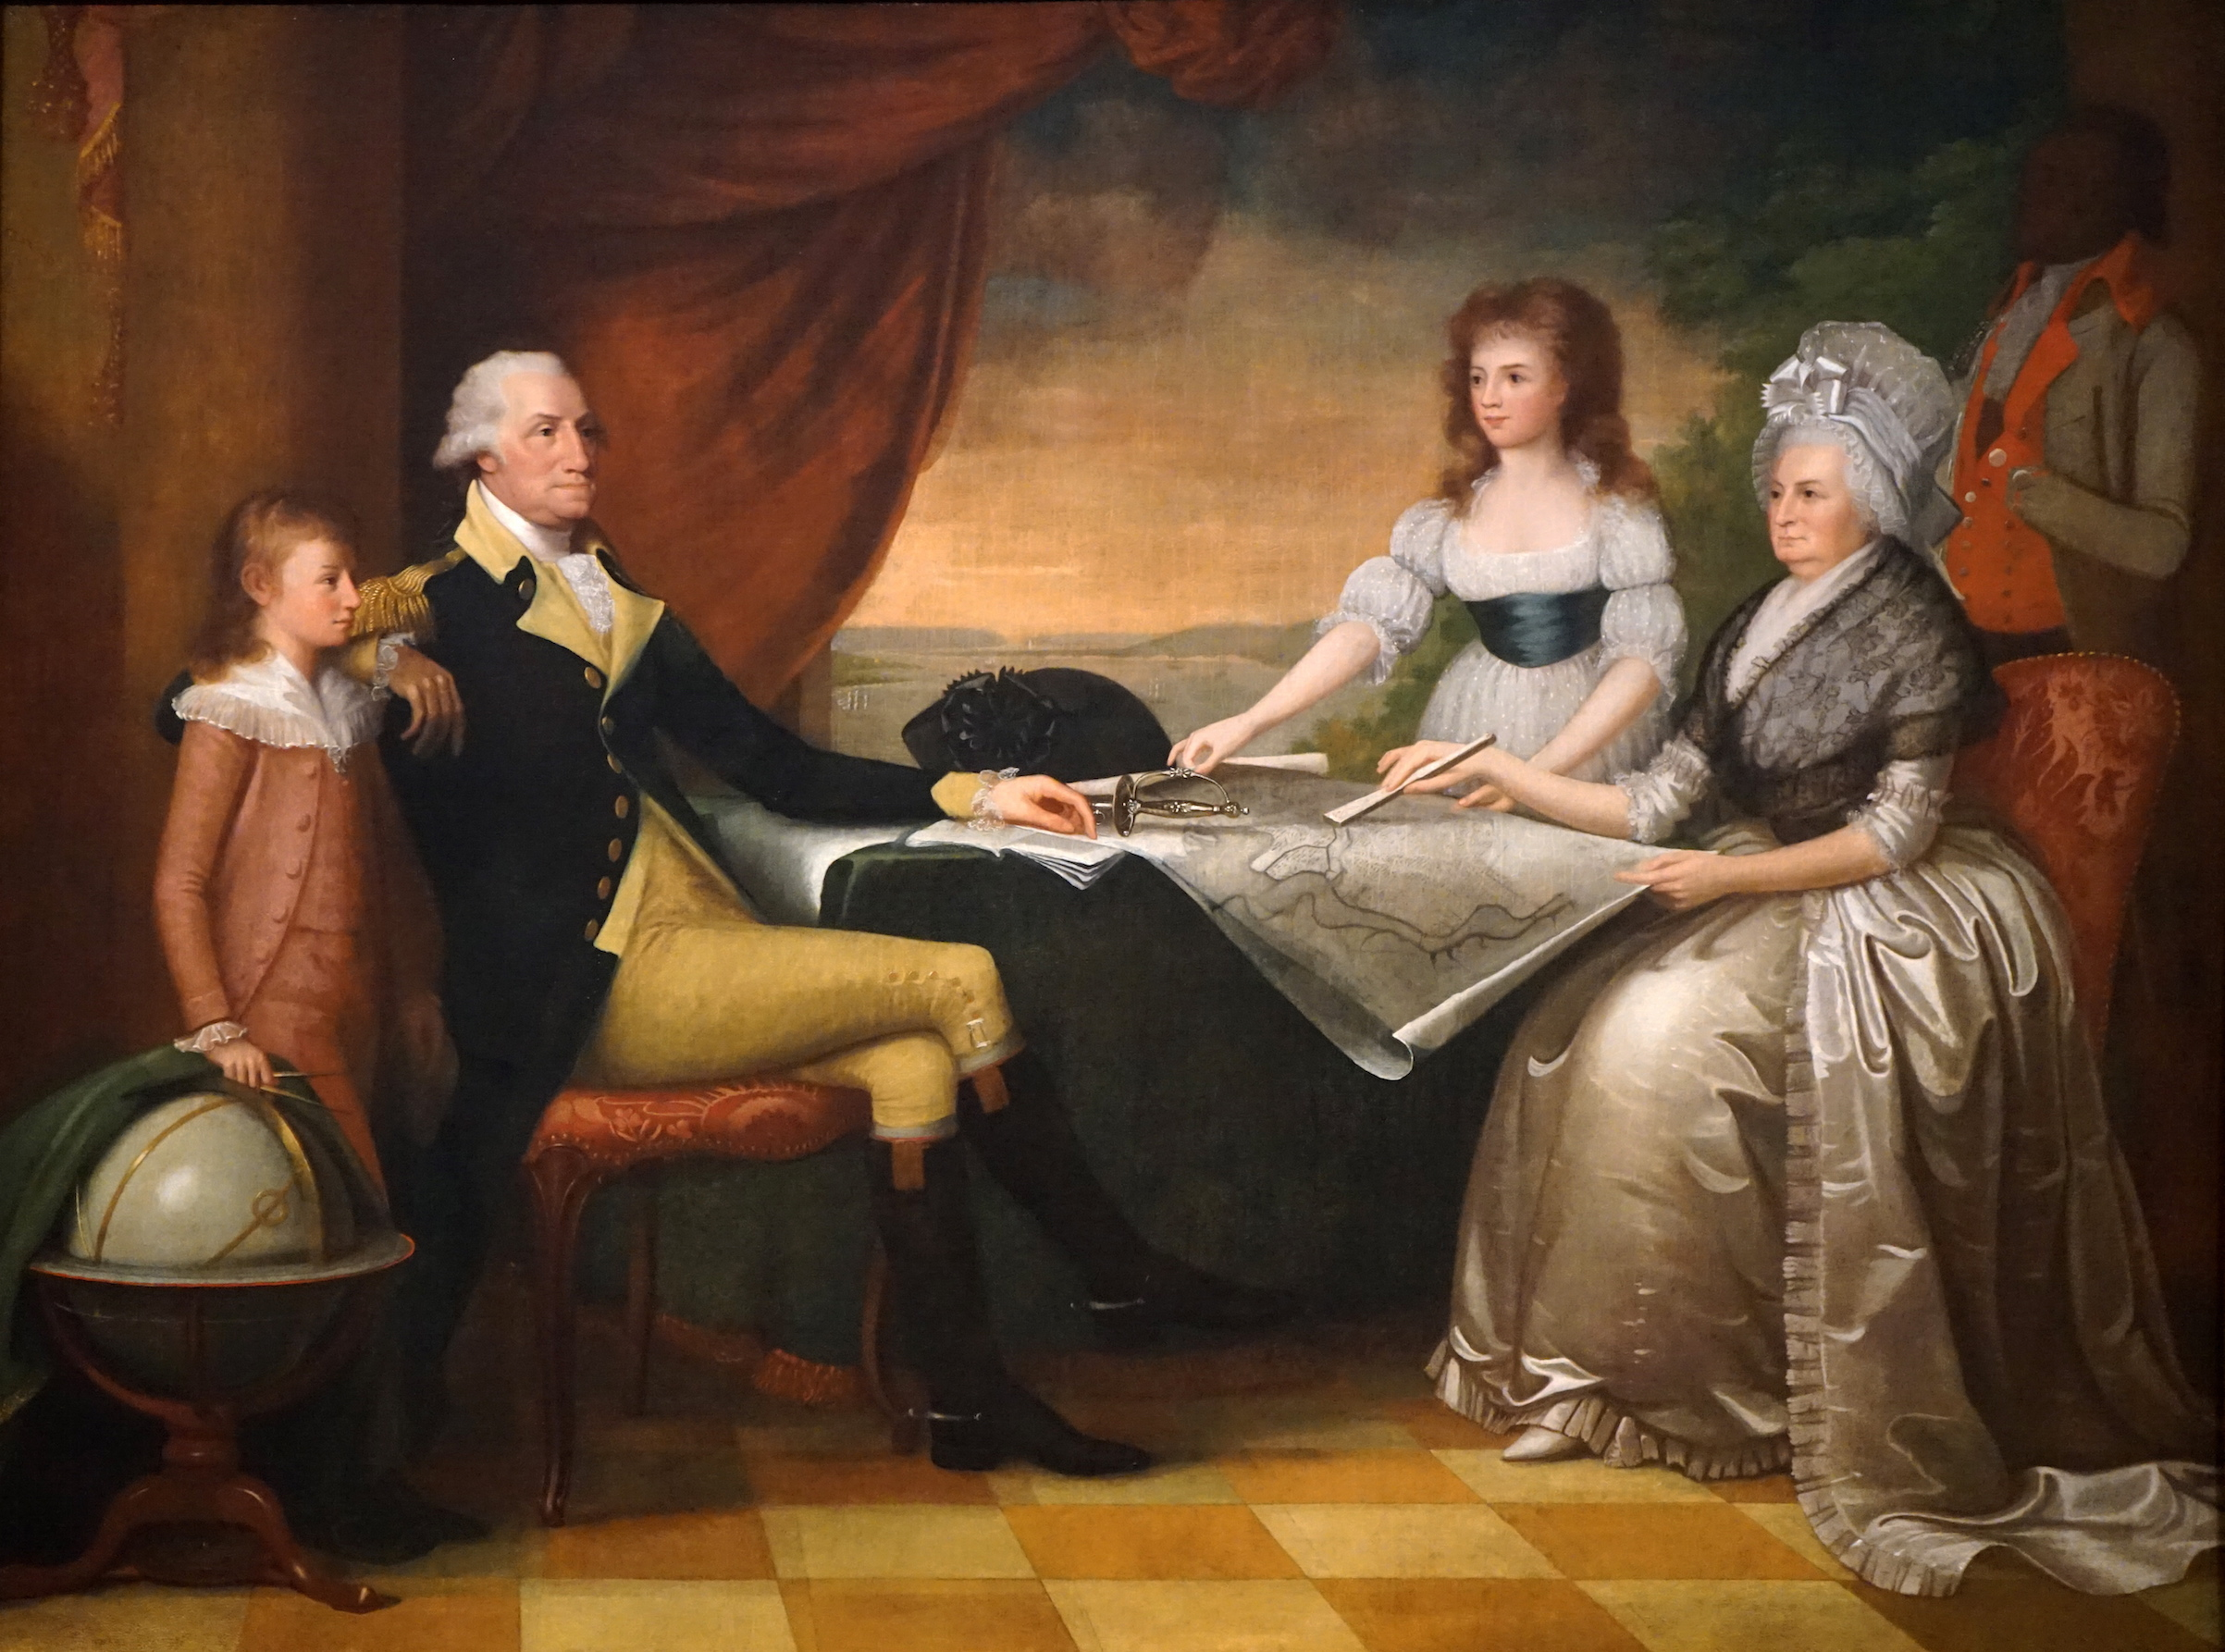 Portrait of George Washington (1732-1799) the 1st President of the United States of America, with Martha Washington and his family. Painted by Edward Savage (1761-1817) an American painter and engraver. Dated 18th Century.